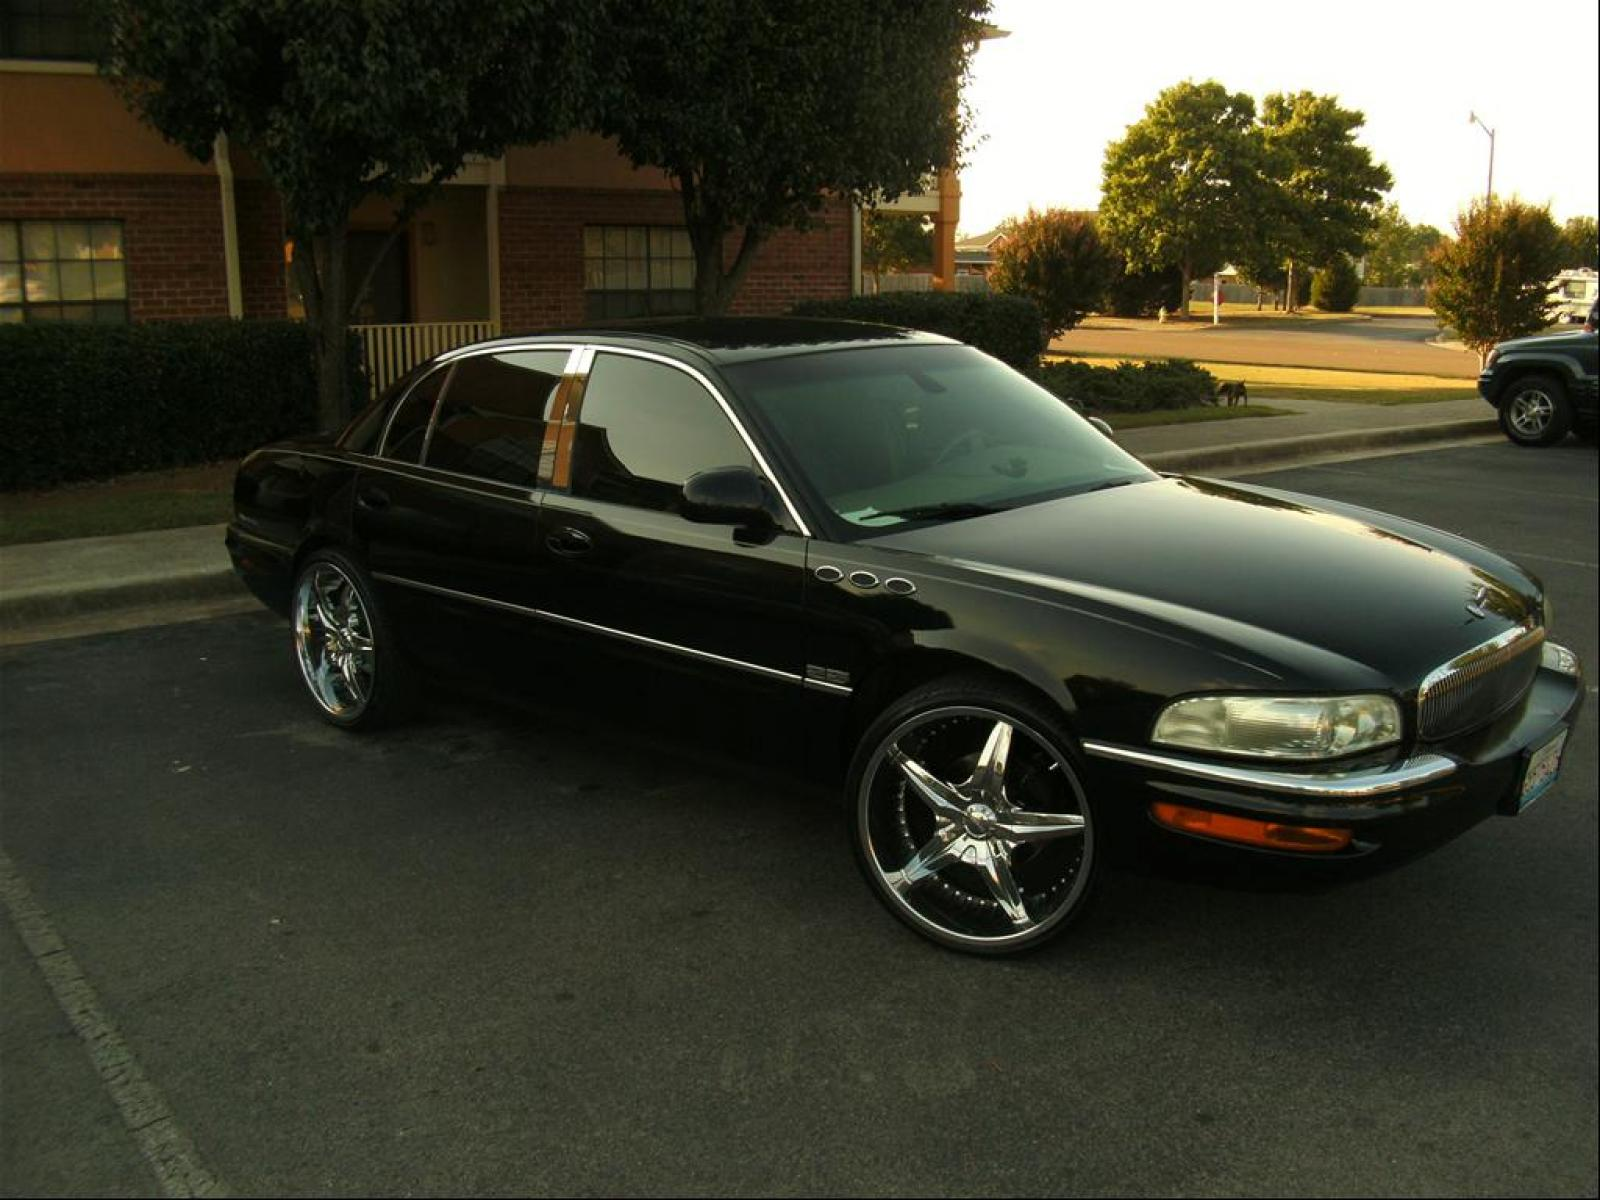 2001 Buick Park Avenue - Information and photos - ZombieDrive